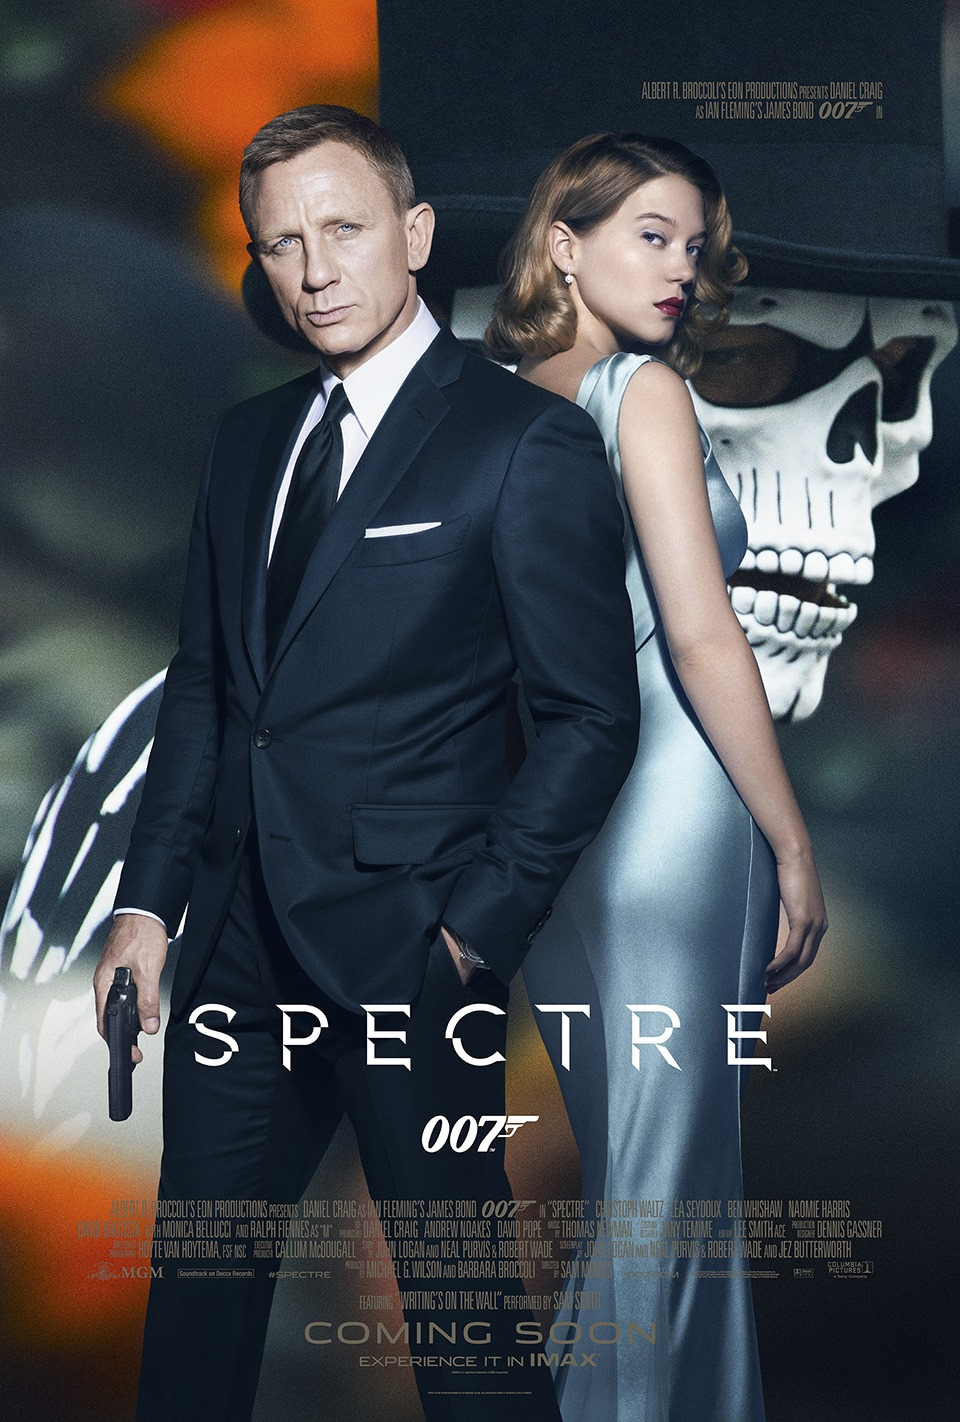 Bond's latest installment fails to meet high expectations